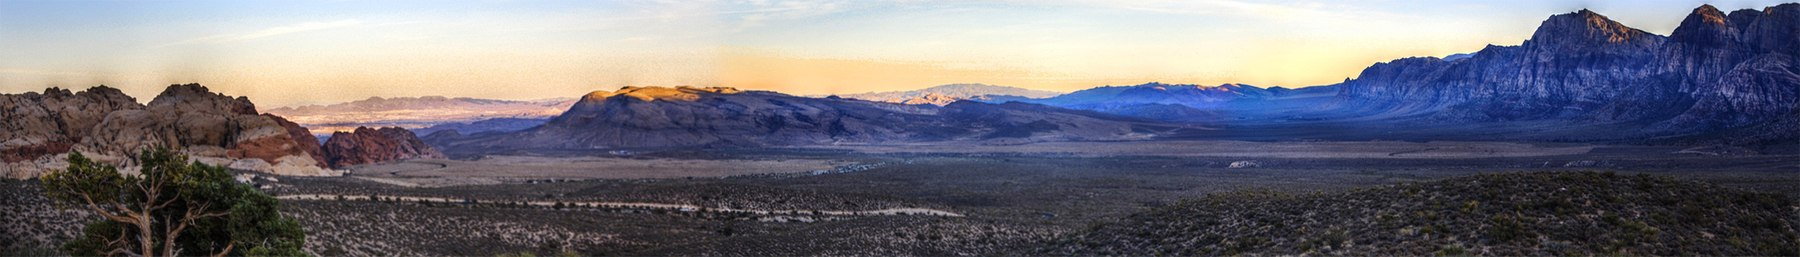 Red Rock Canyon, Nevada banner.jpg